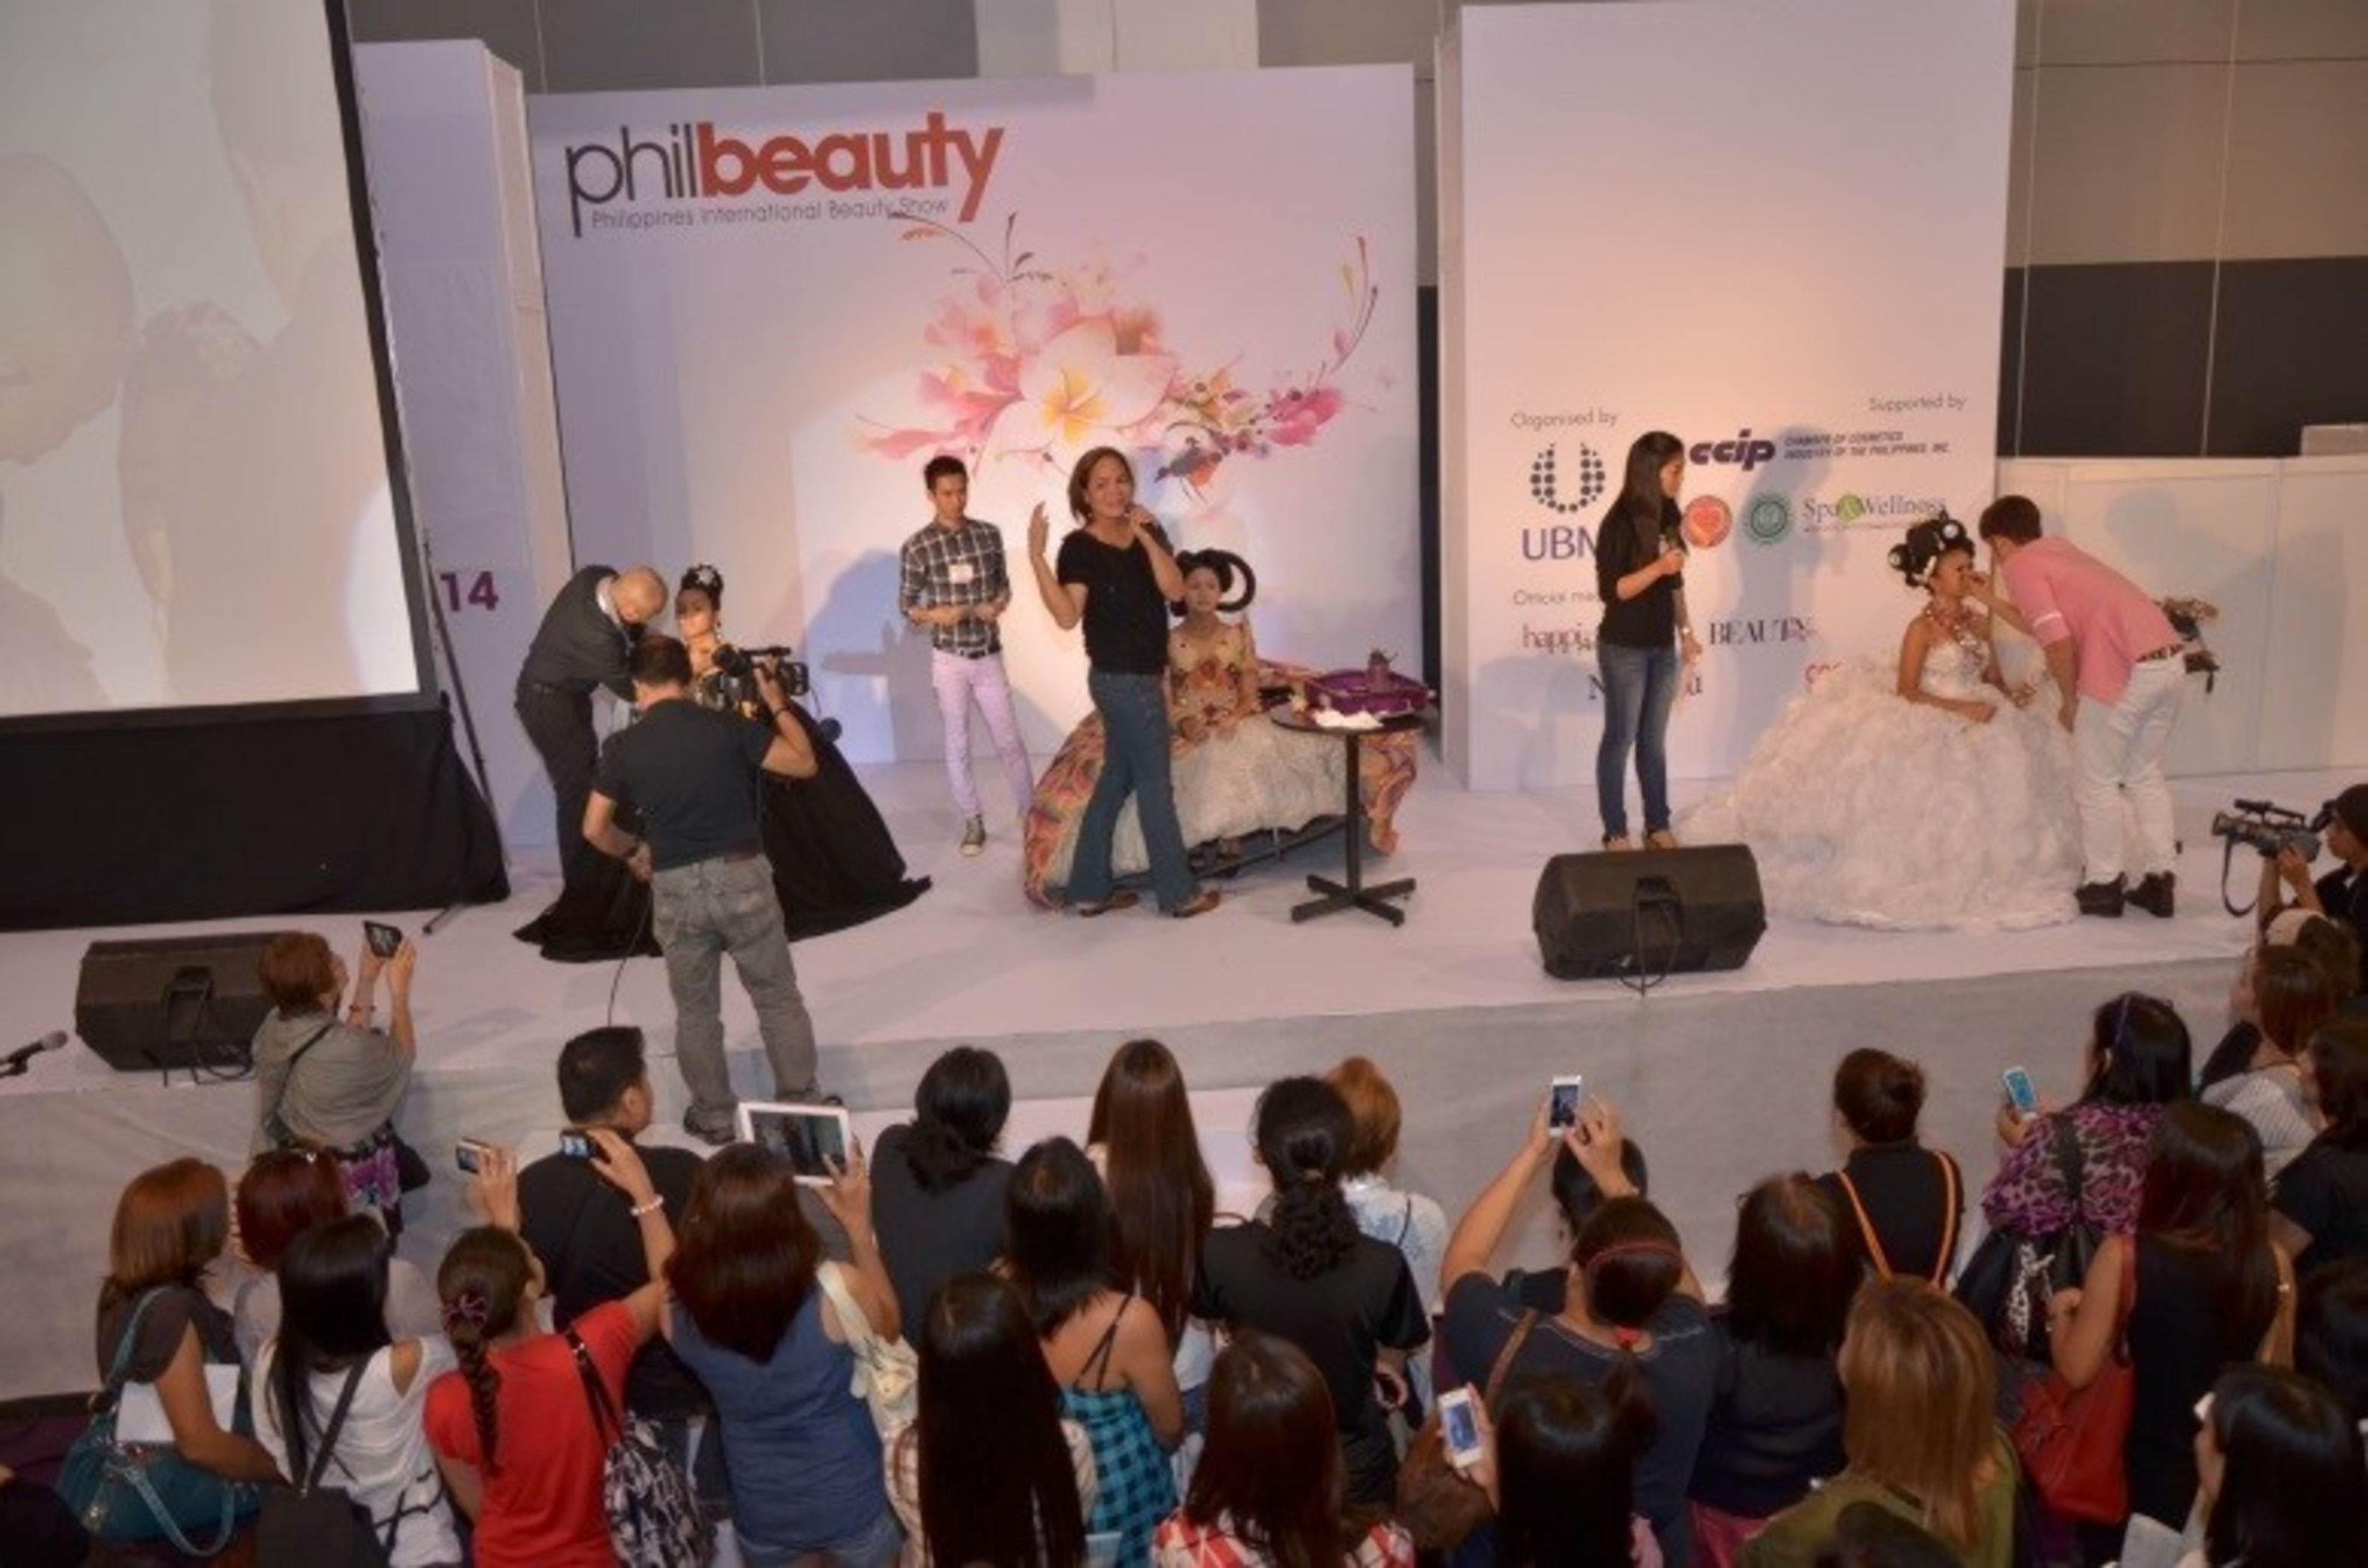 Bringing Out The Best - Local beauty artist in the Philippines taking the center stage to showcase the latest beauty trends.